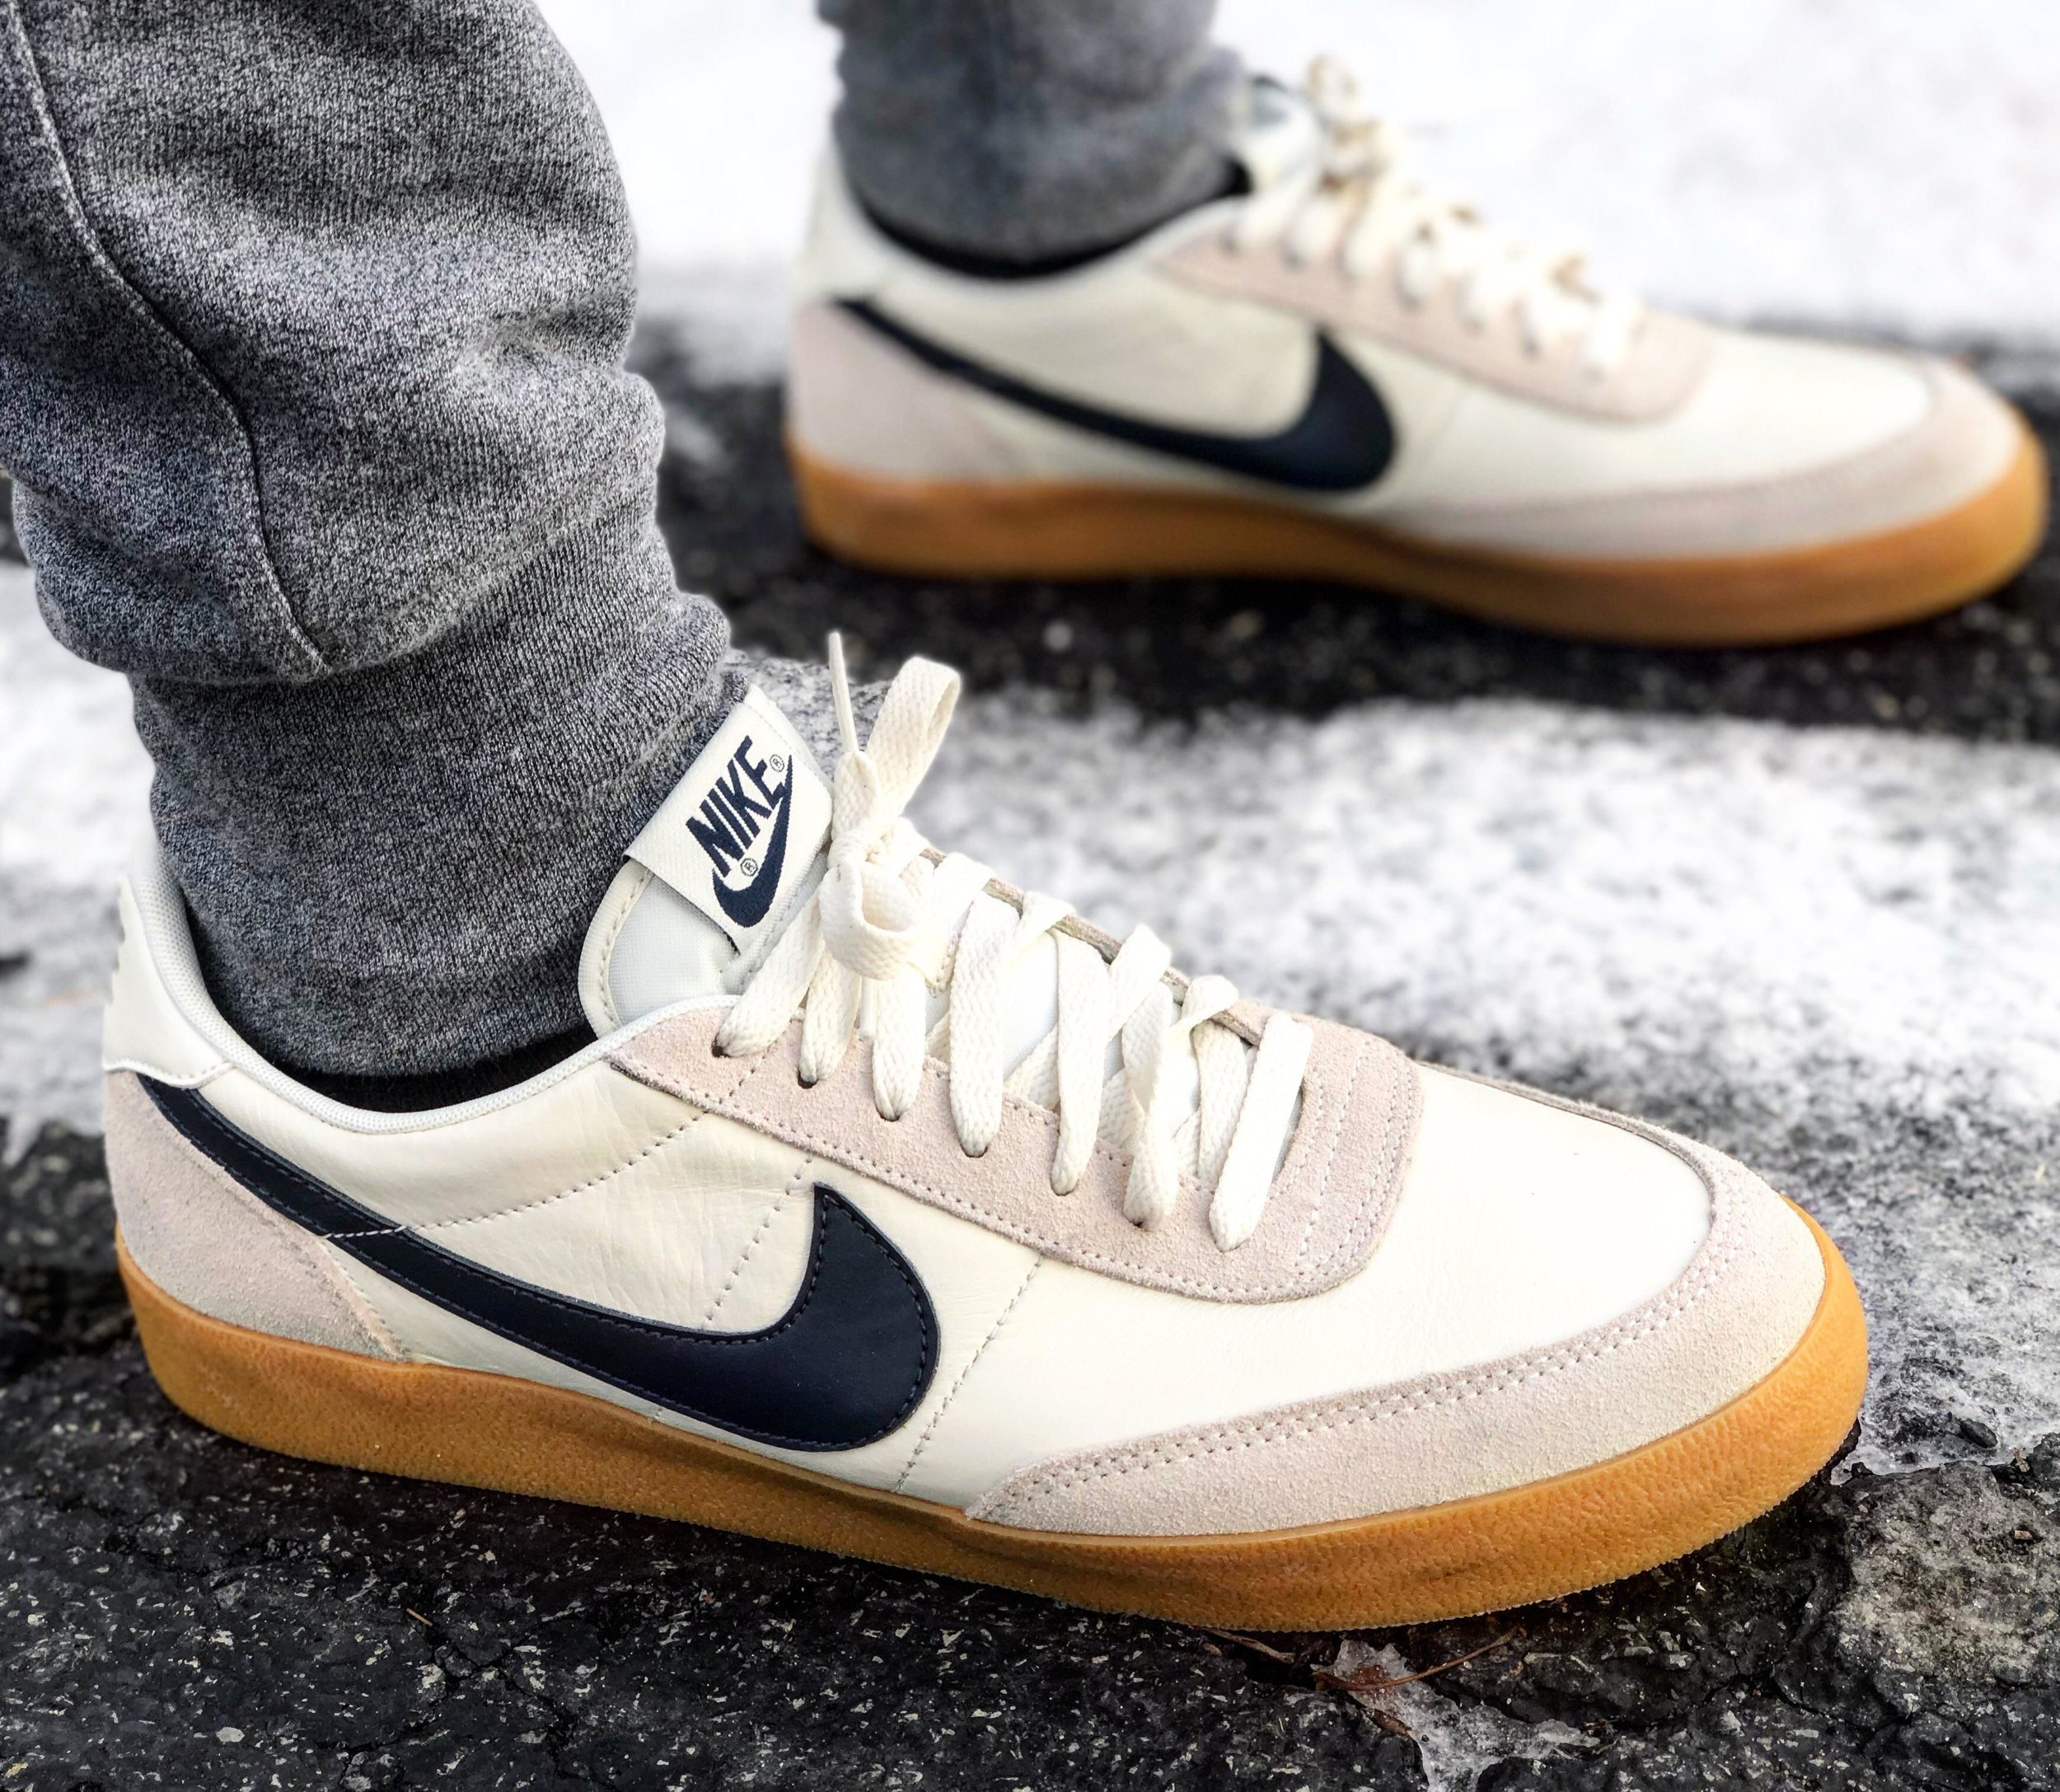 Despertar fragmento esta noche  J Crew x Nike Killshot 2 Is On Sale For $90 + Free Shipping! — A Sneaker  Life